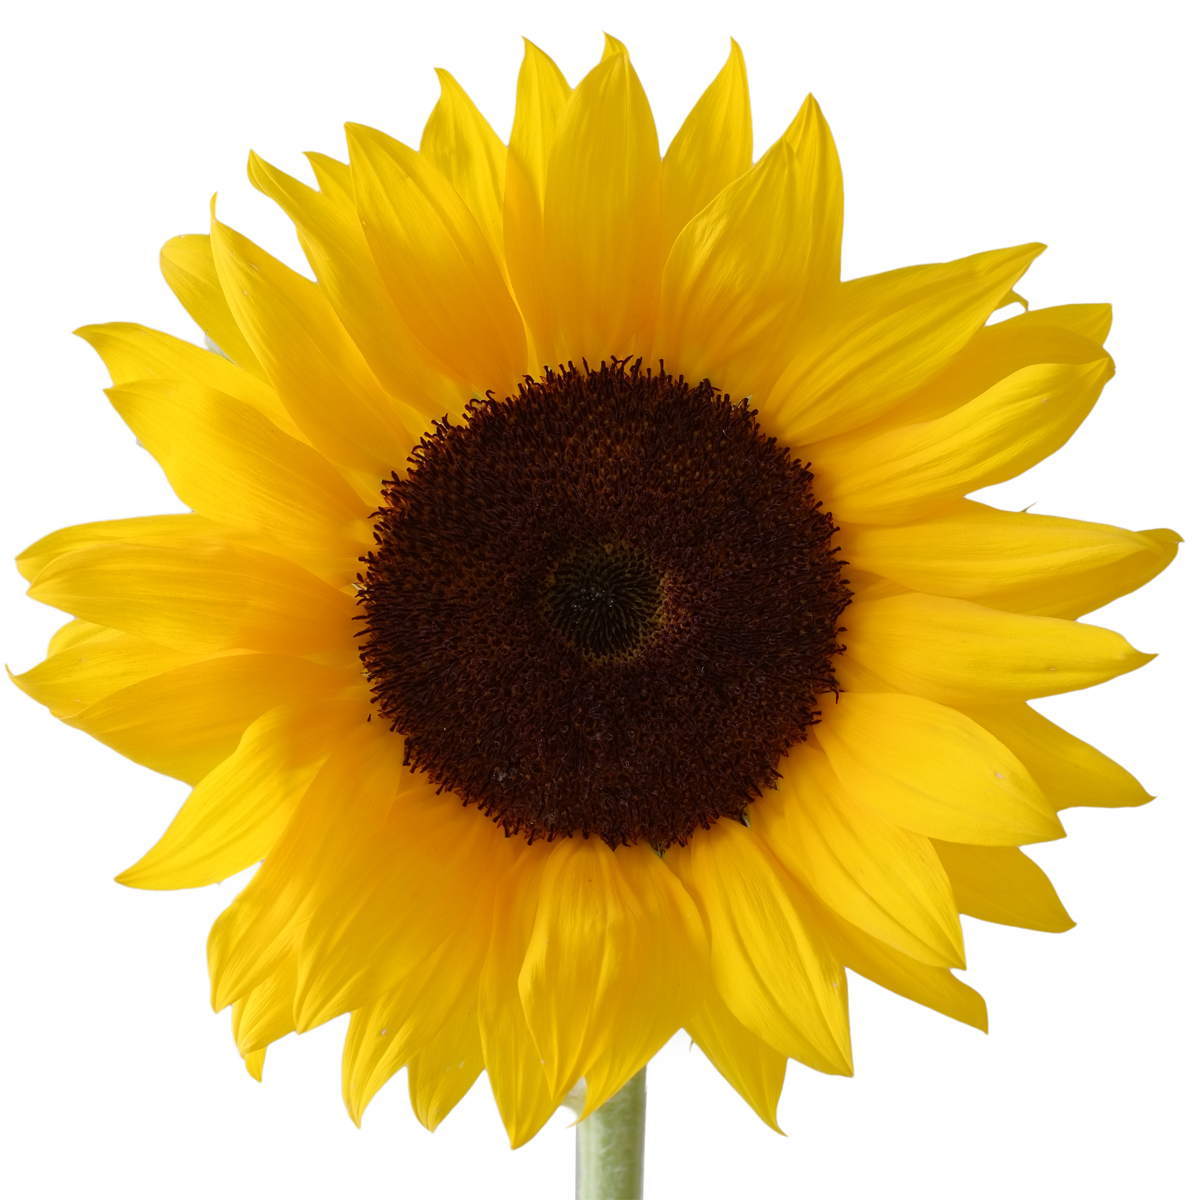 1200x1200 Icon Free Download Sunflower Vectors